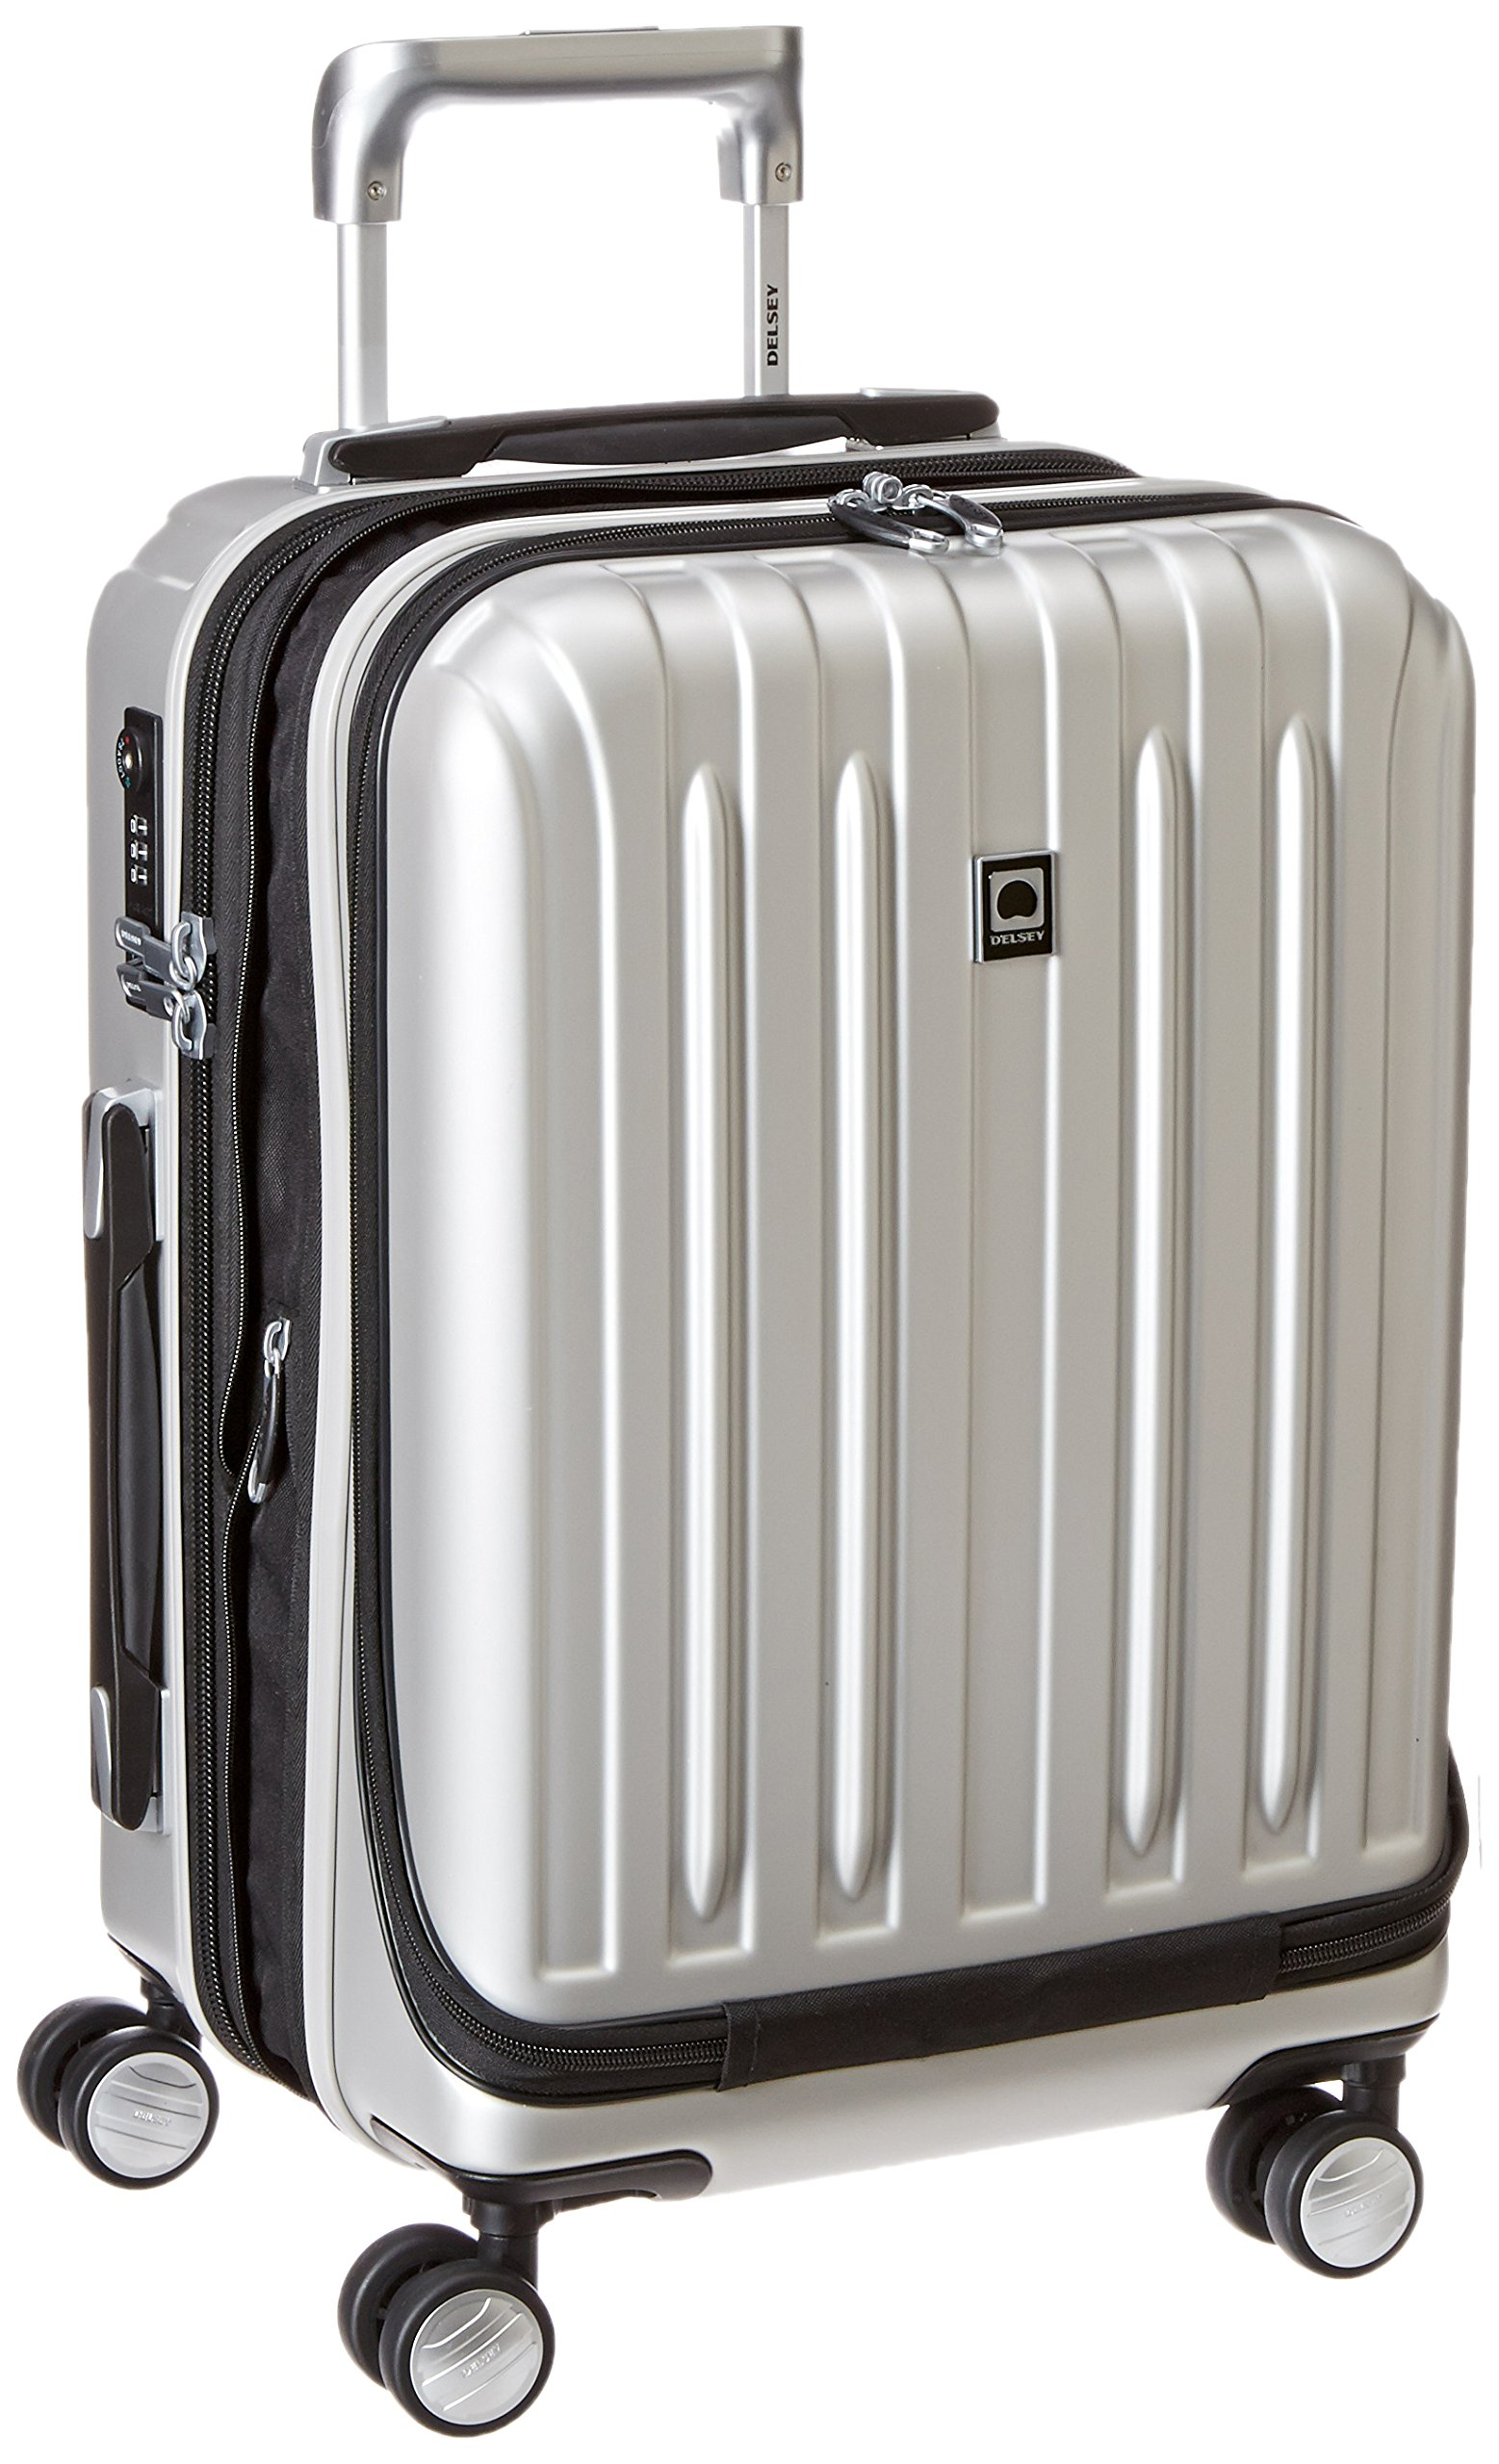 DELSEY Paris Luggage Helium Titanium International Carry On Expandable Spinner Trolley-19'', Silver